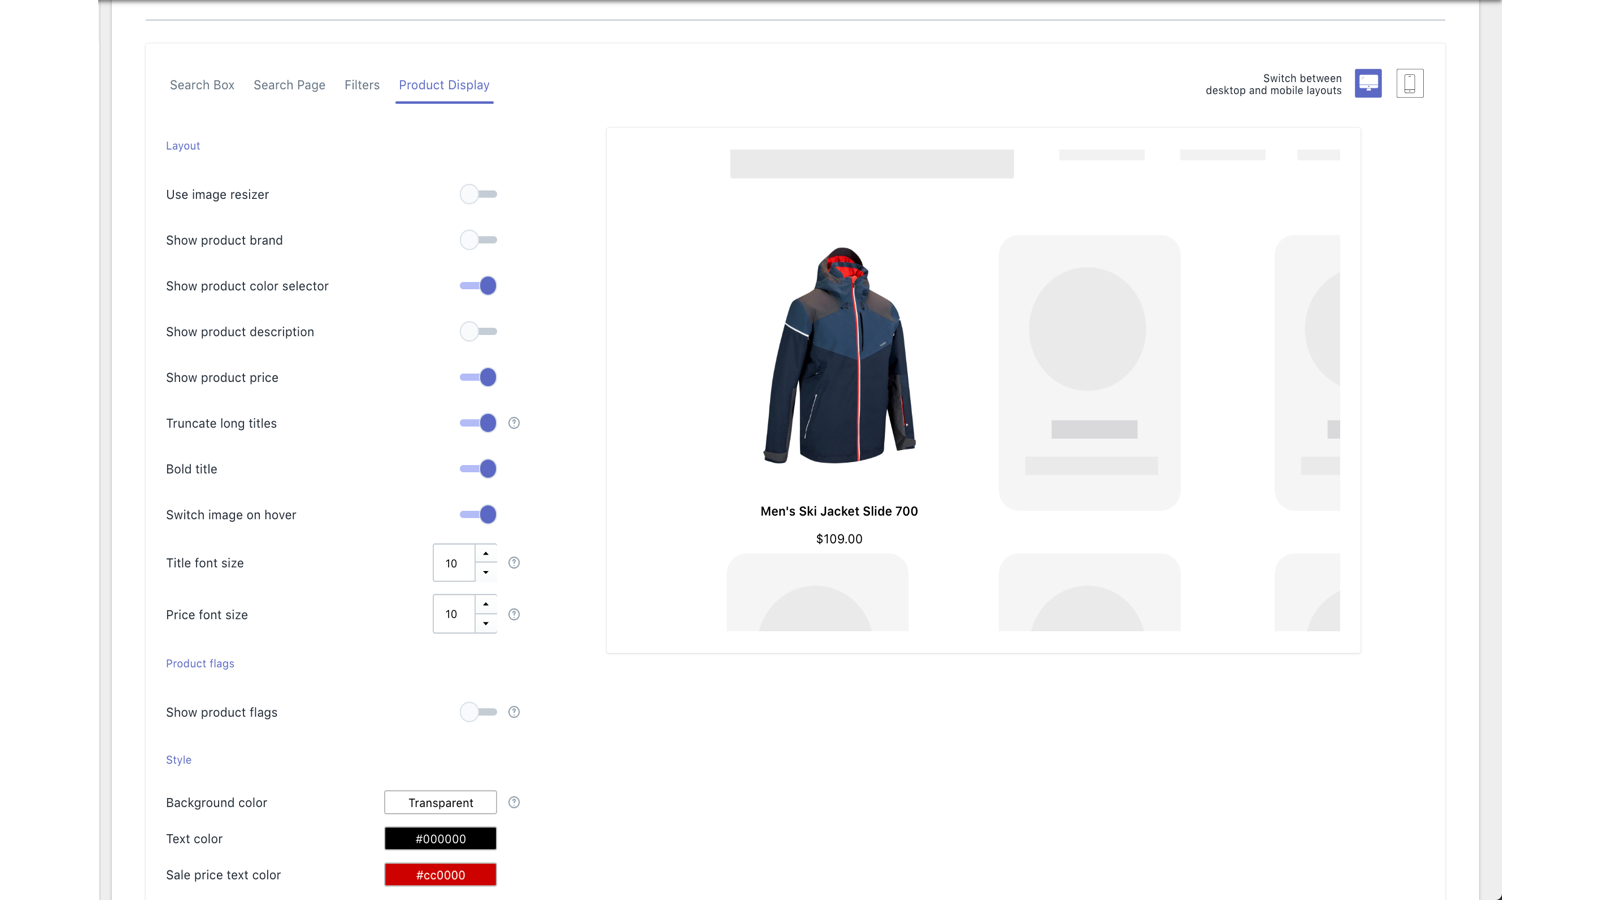 Shopify App View: Customize Search Filters